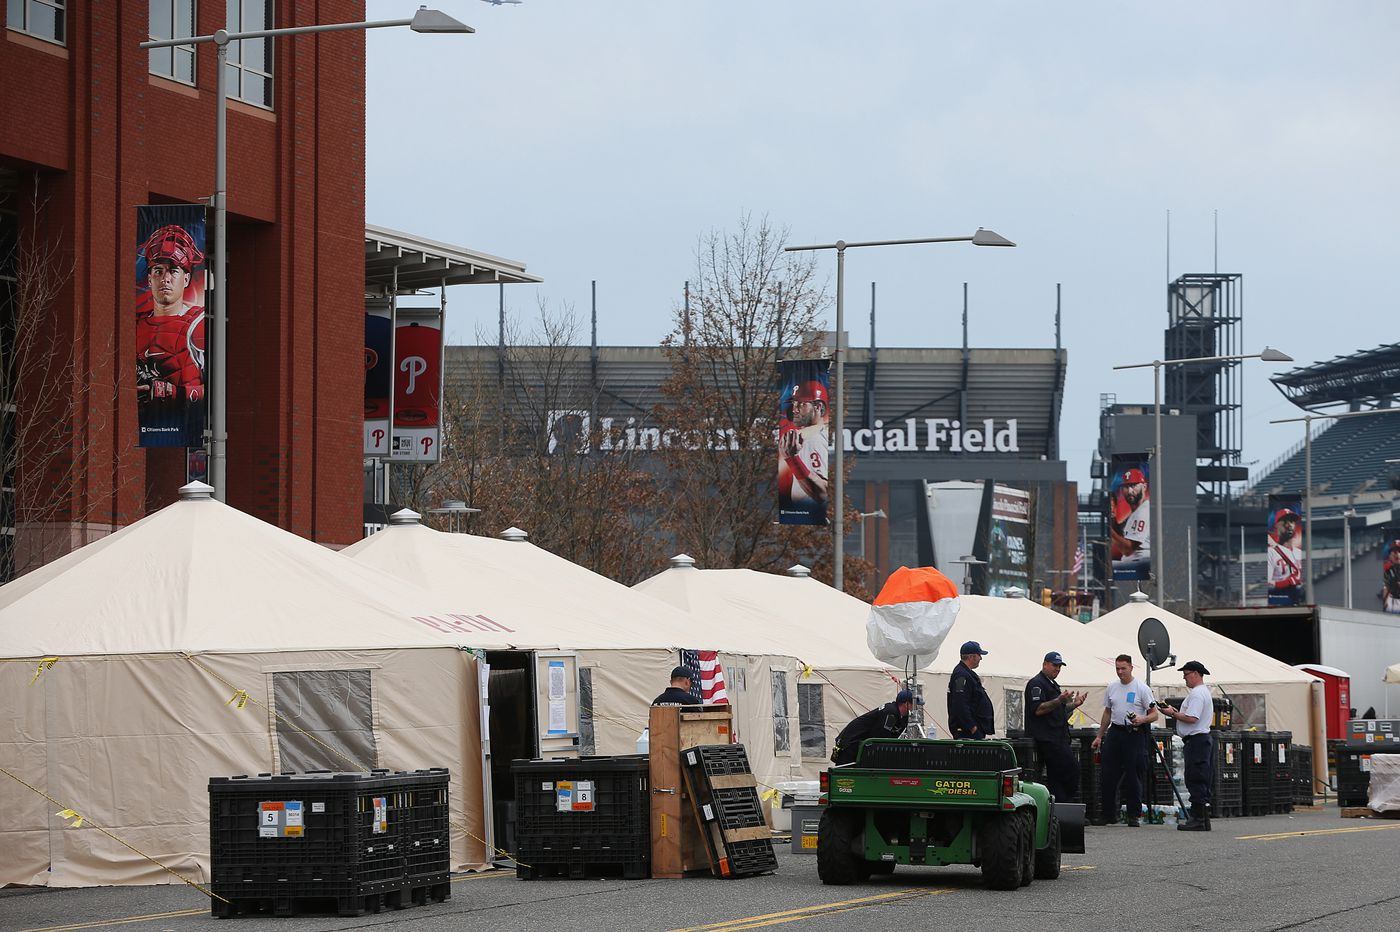 With Phillies' home opener on hold, Citizens Bank Park has become a haunting sight | David Murphy